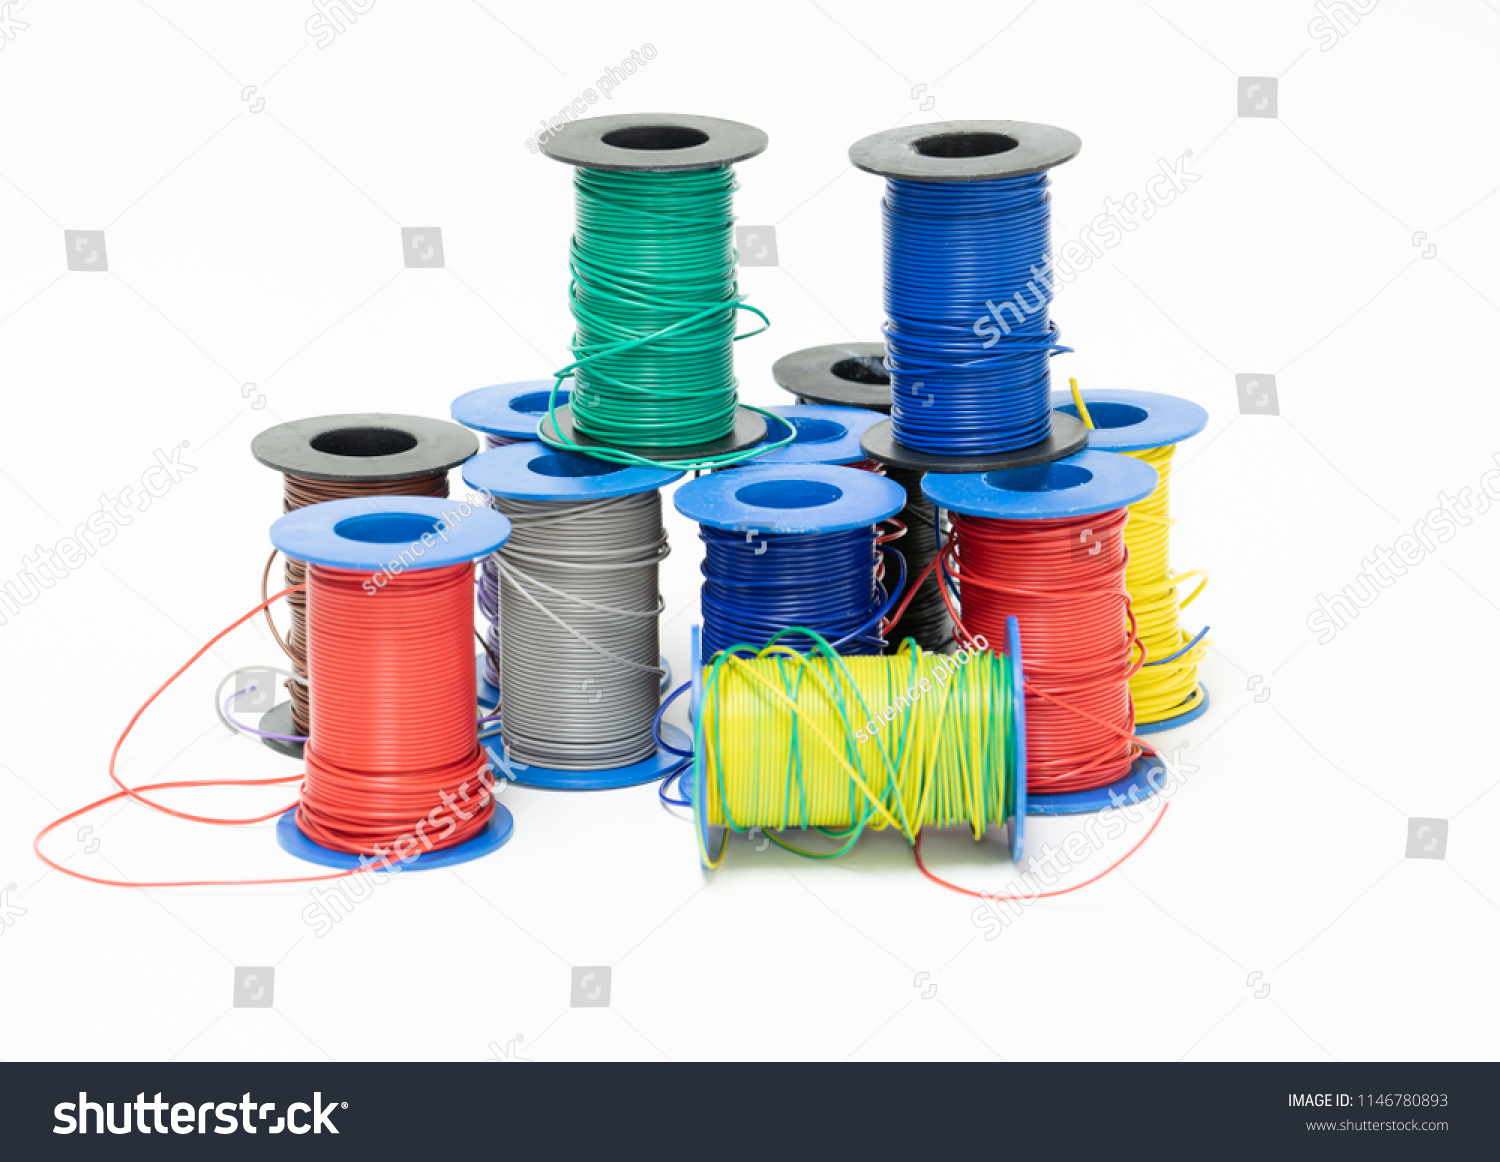 hight resolution of electric wires cables multicolored computer cable isolated on white background